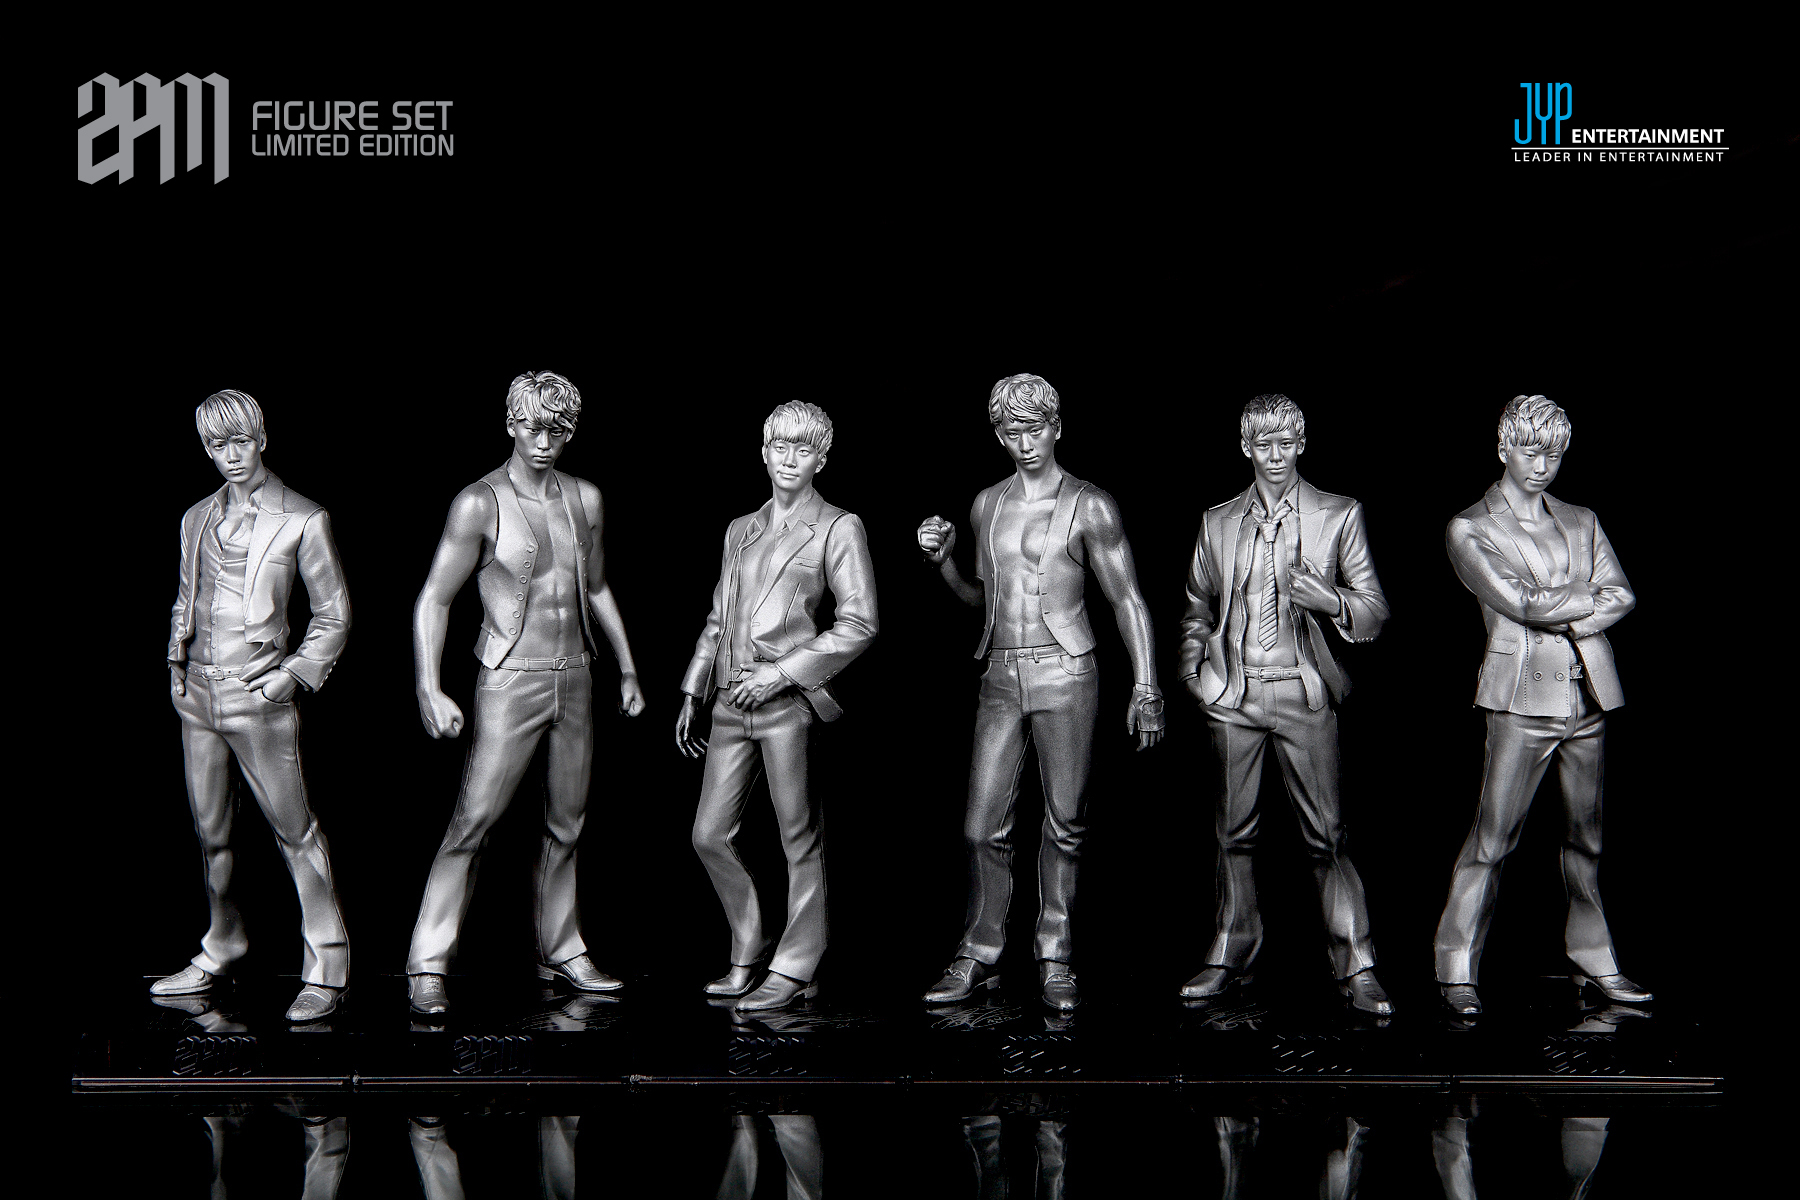 [Soompi Shop] Introducing Limited Edition 2PM Figure Set!